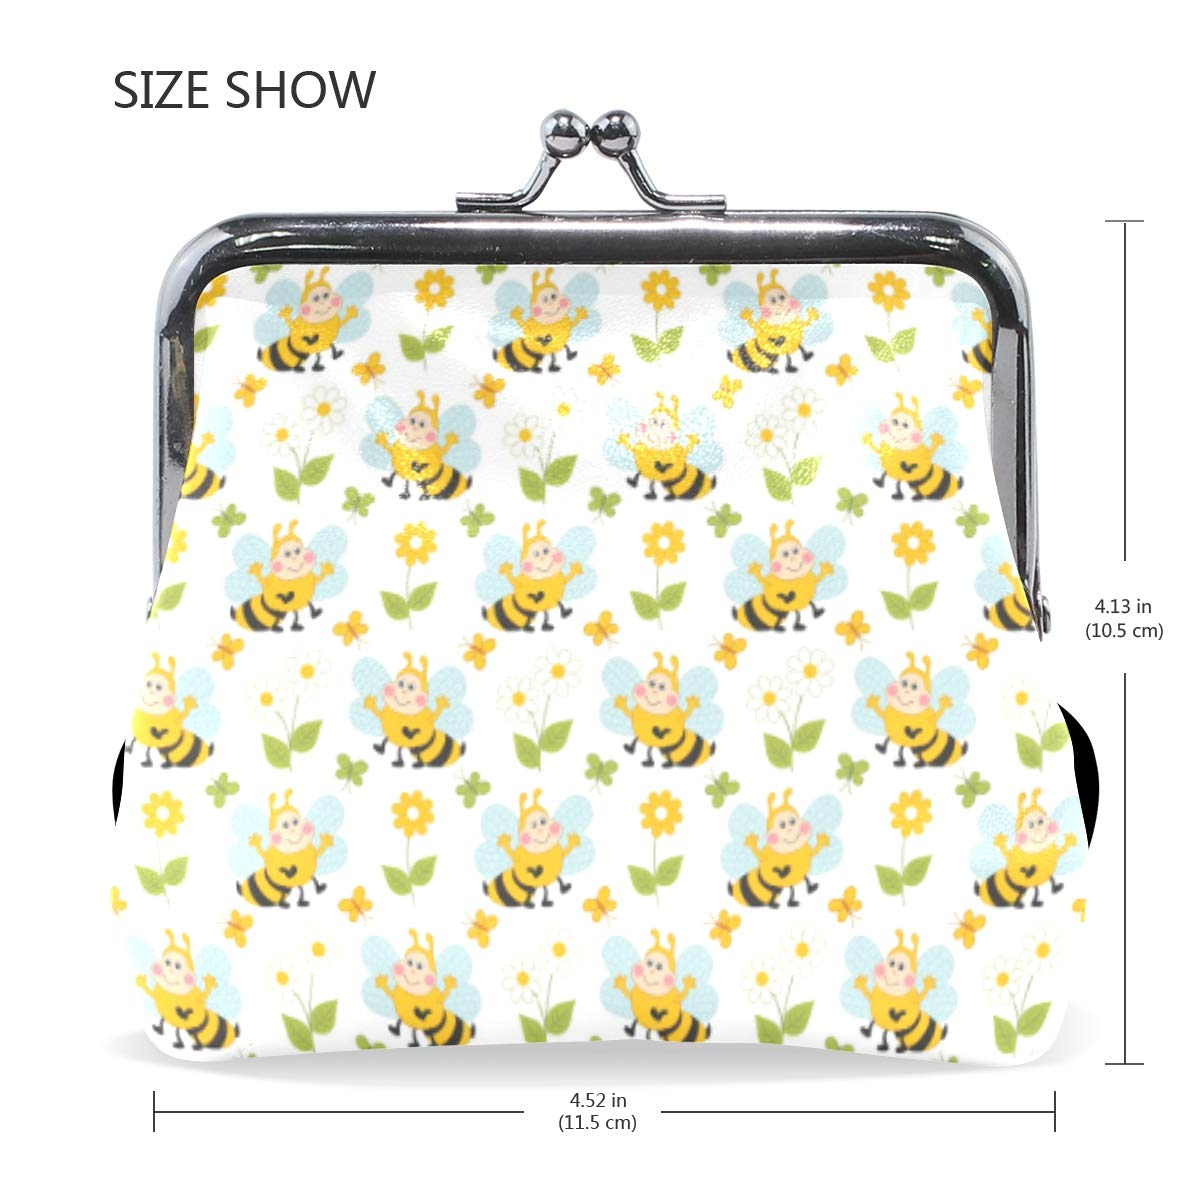 Exquisite Buckle Coin Purses White Flowers Art Mini Wallet Key Card Holder Purse for Women